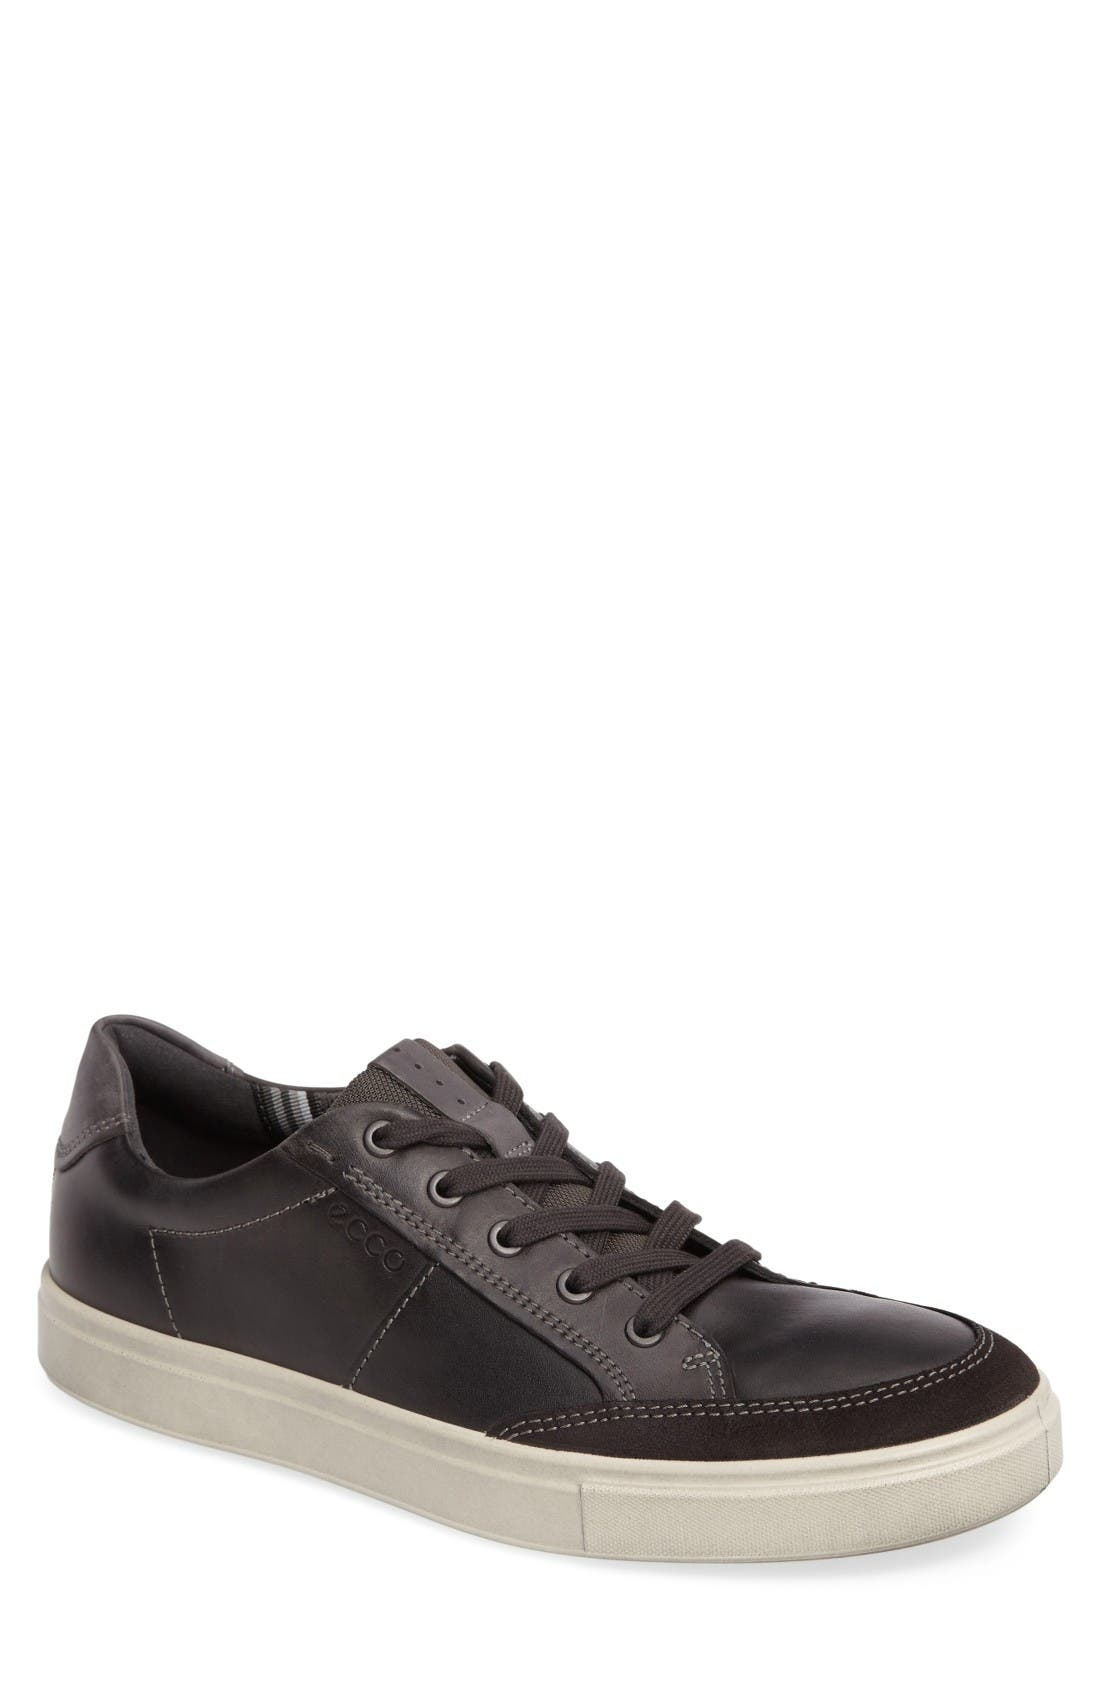 Kyle Classic Sneaker,                             Main thumbnail 1, color,                             Moonless Leather